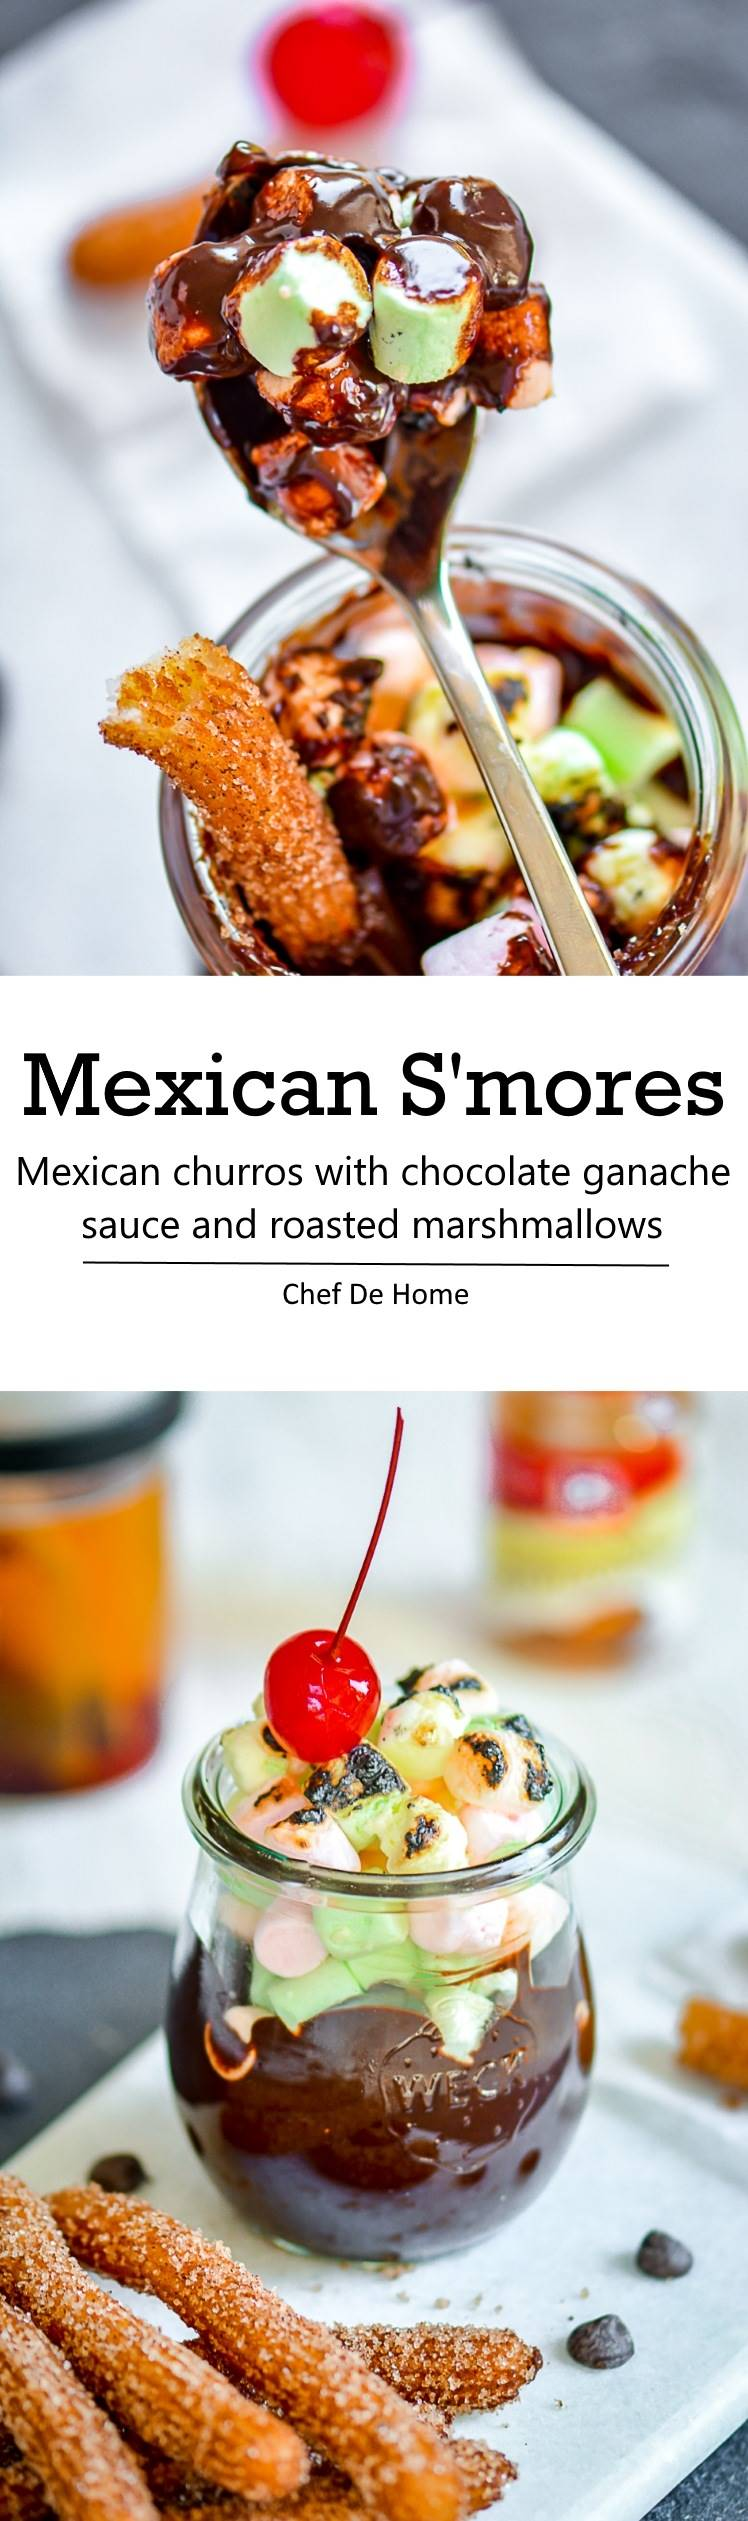 Mexican Chocolate SMores for Cinco De Mayo celebration or simply best summer family times ahead | chefdehome.com